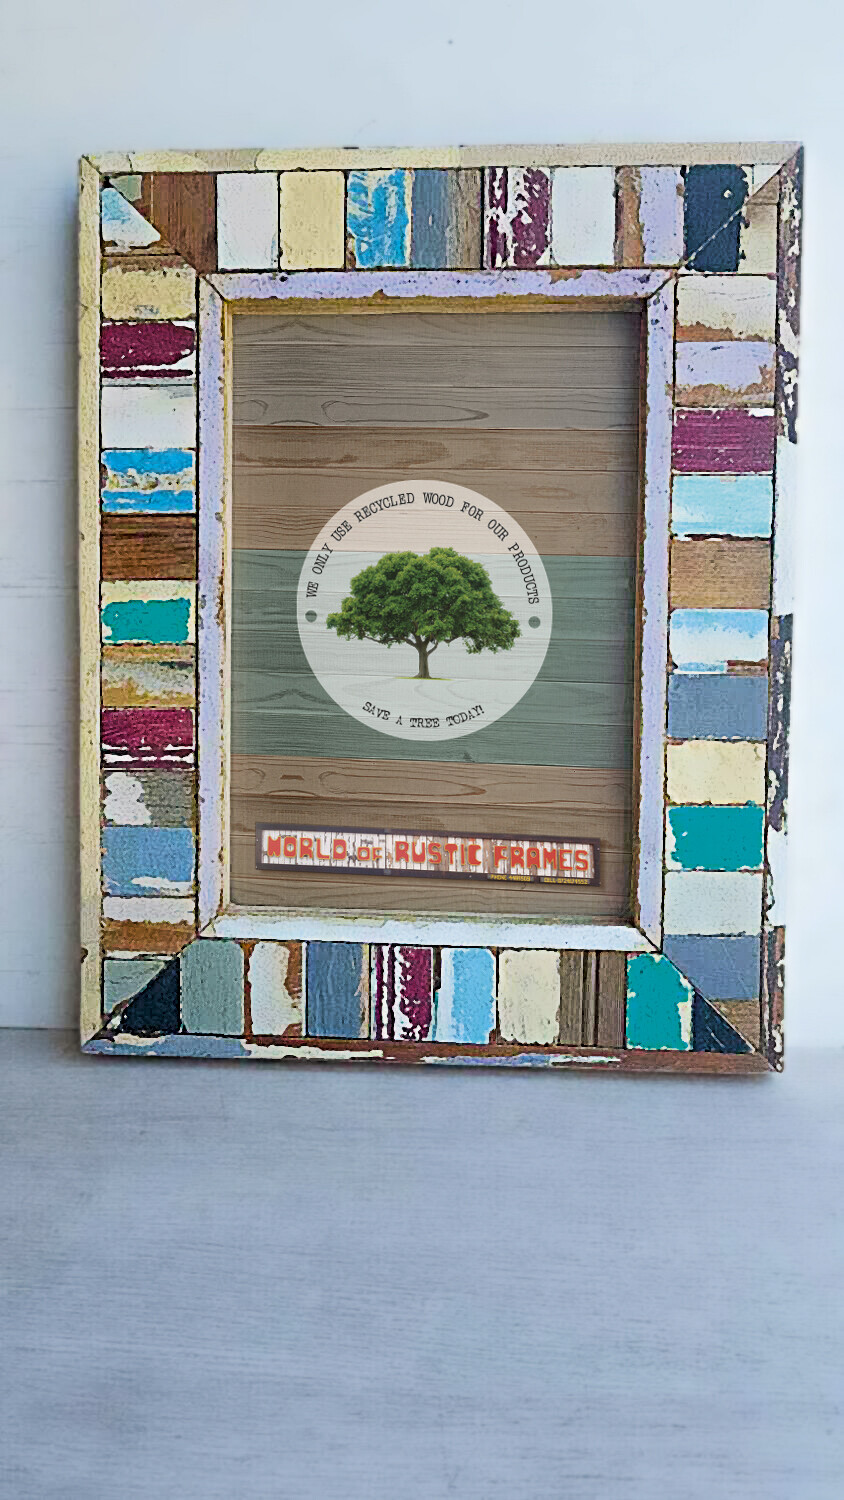 A4 Madiba picture frame - 21 cm x 30 cm (8 × 12 inches)